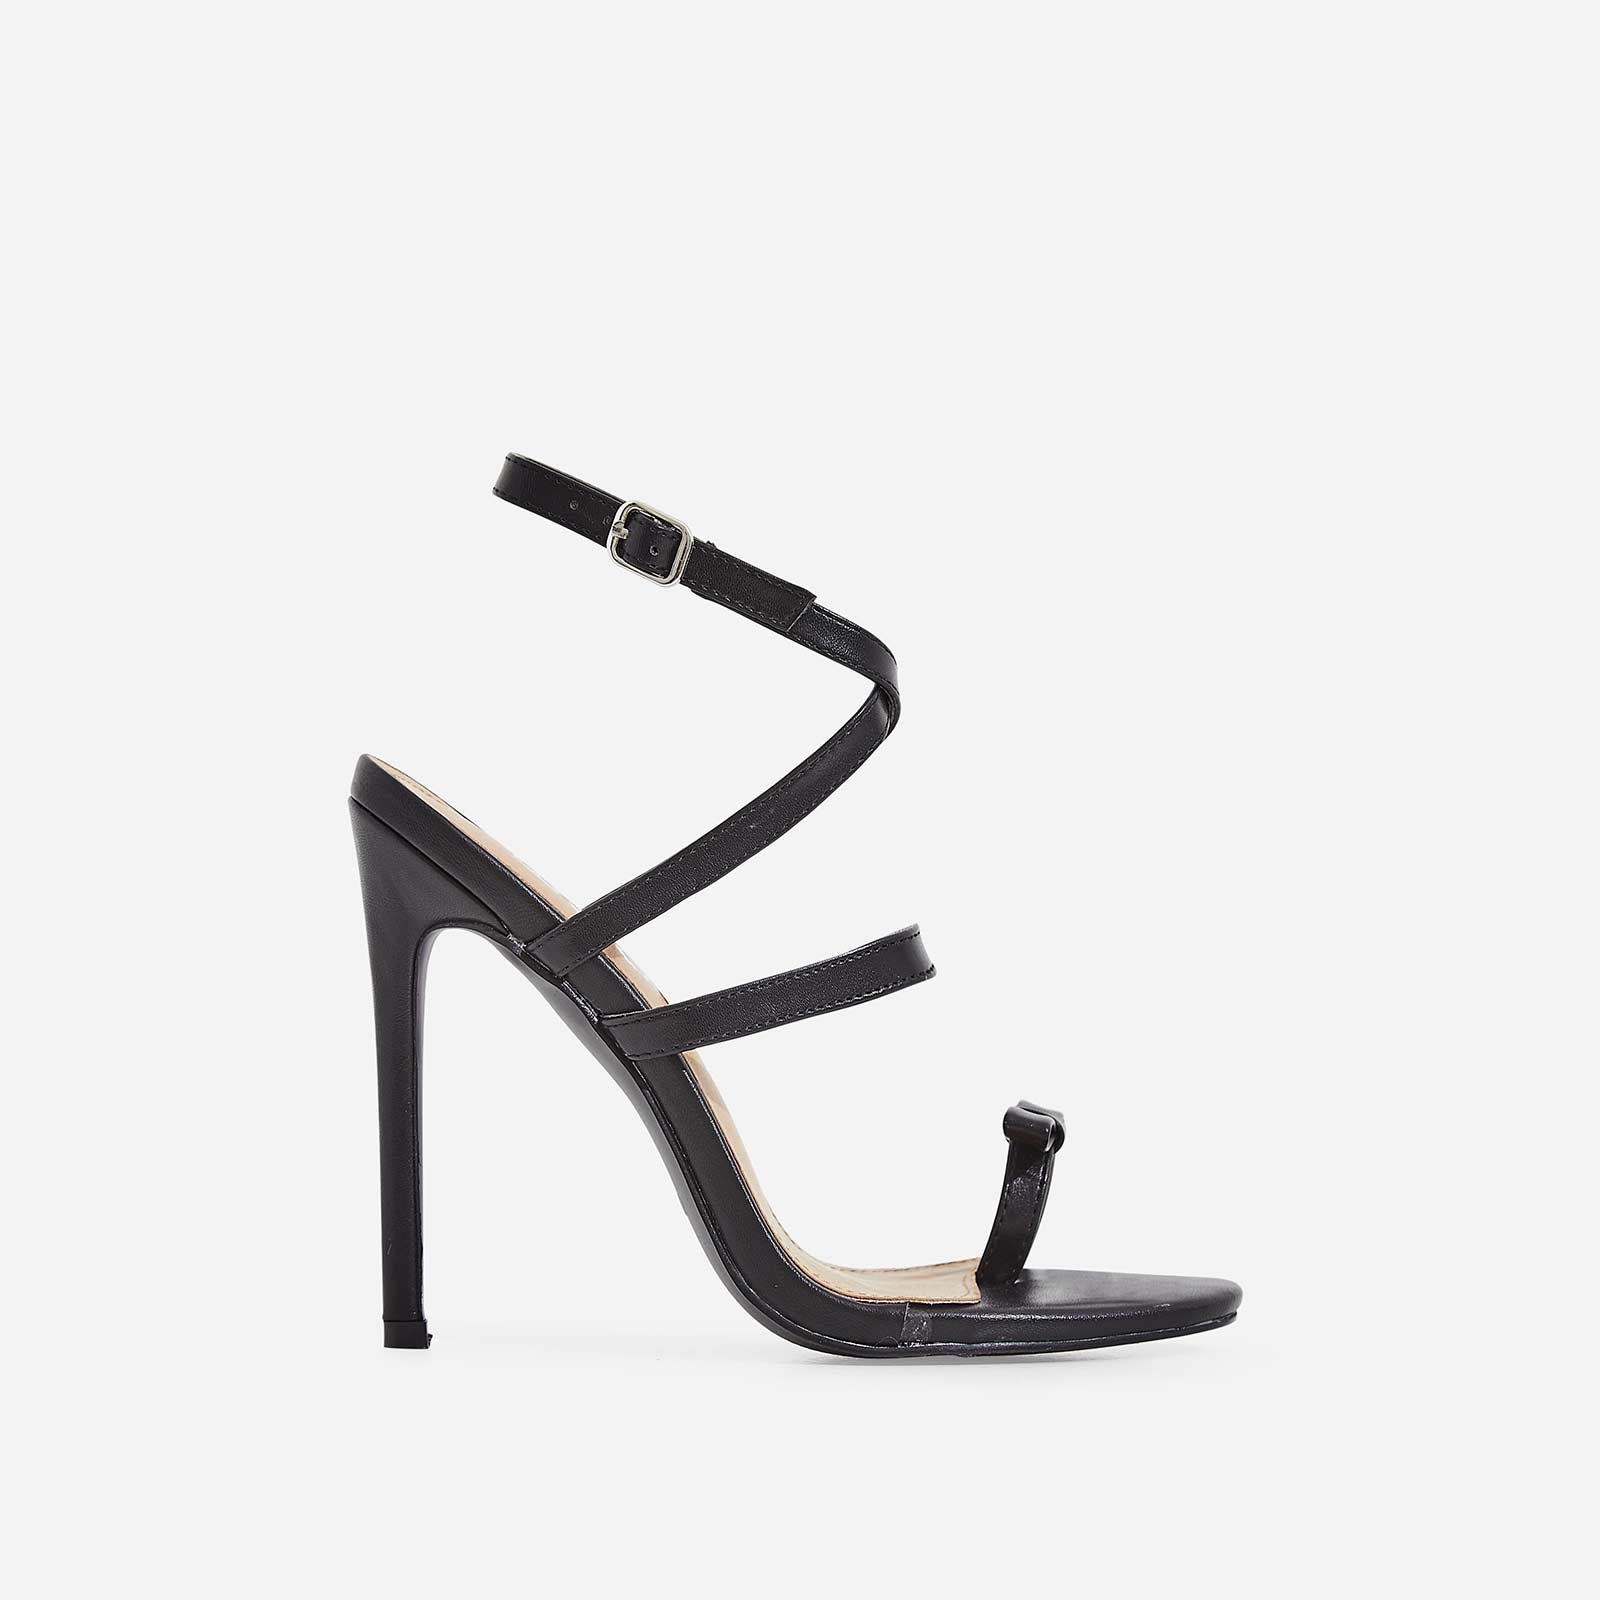 Samira Bow Detail Barely There Heel In Black Faux Leather